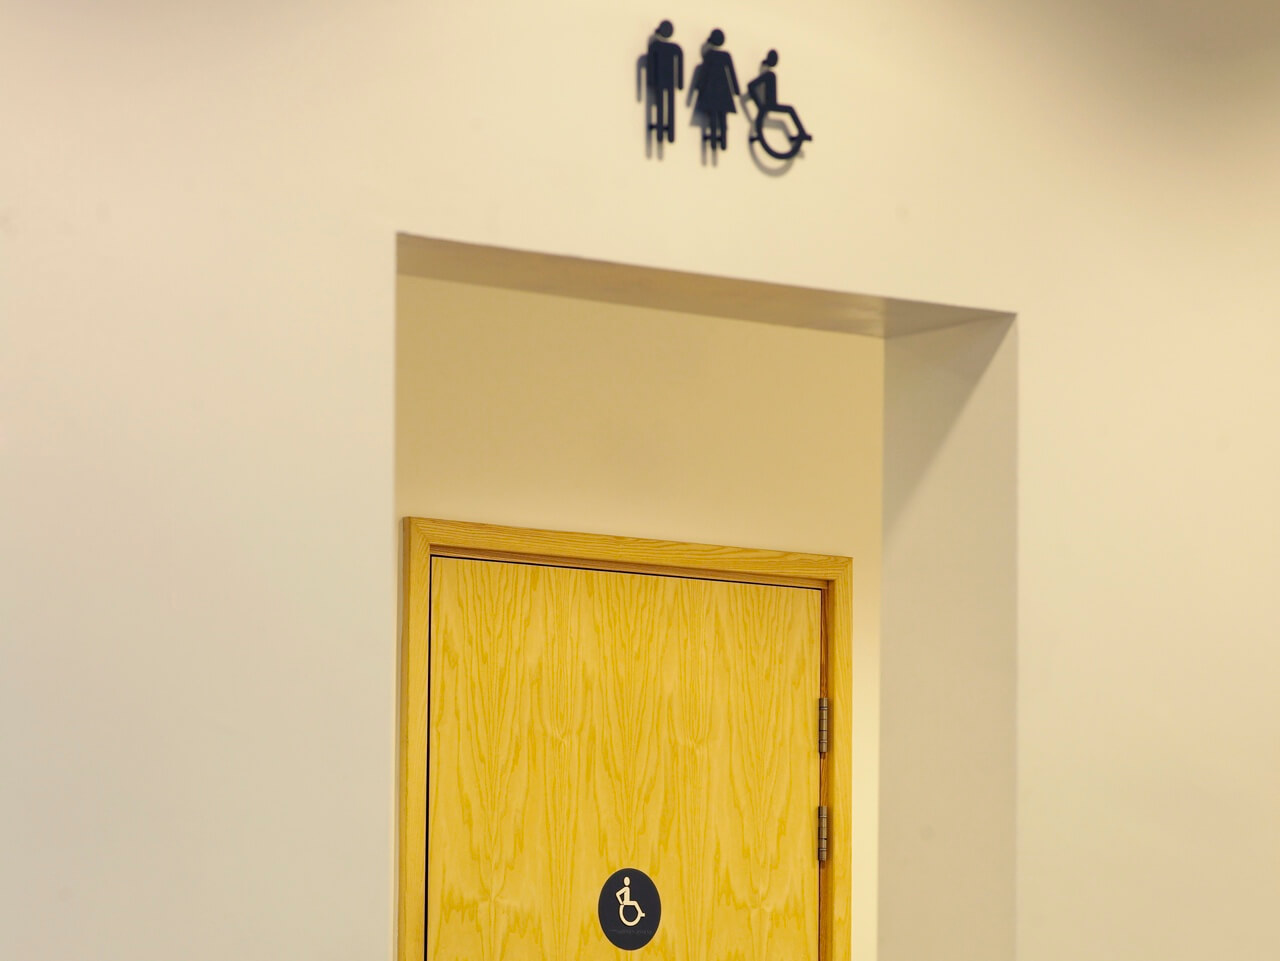 Wayfinding and signage with pictograms to indicate the location of accessible toilets